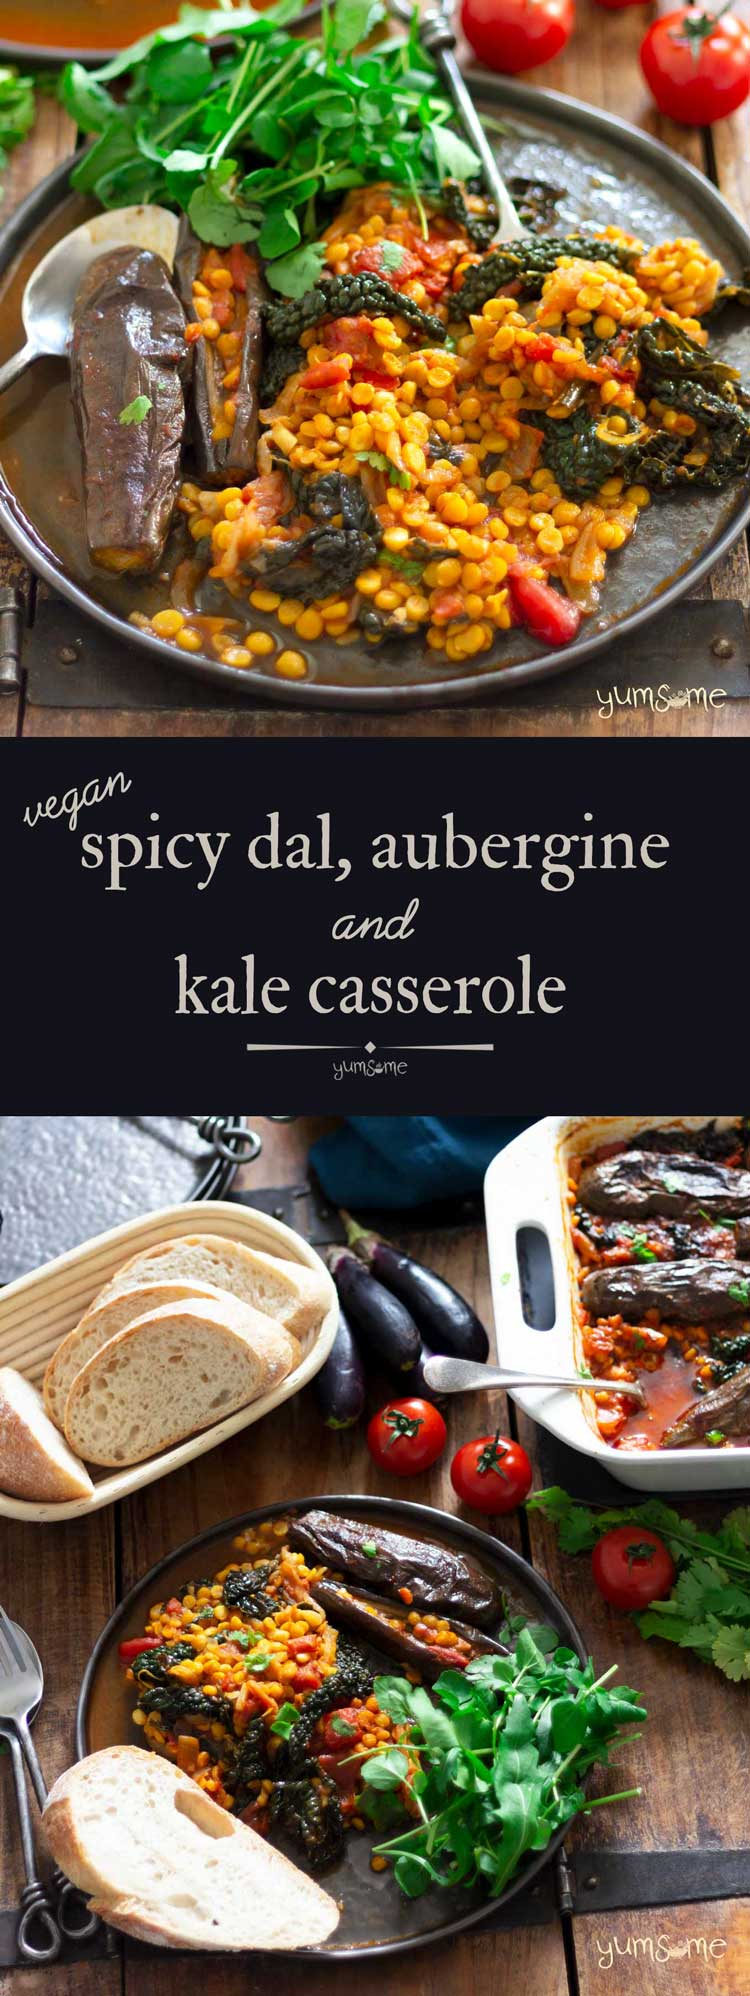 Spicy Dal, Aubergine, and Kale Casserole